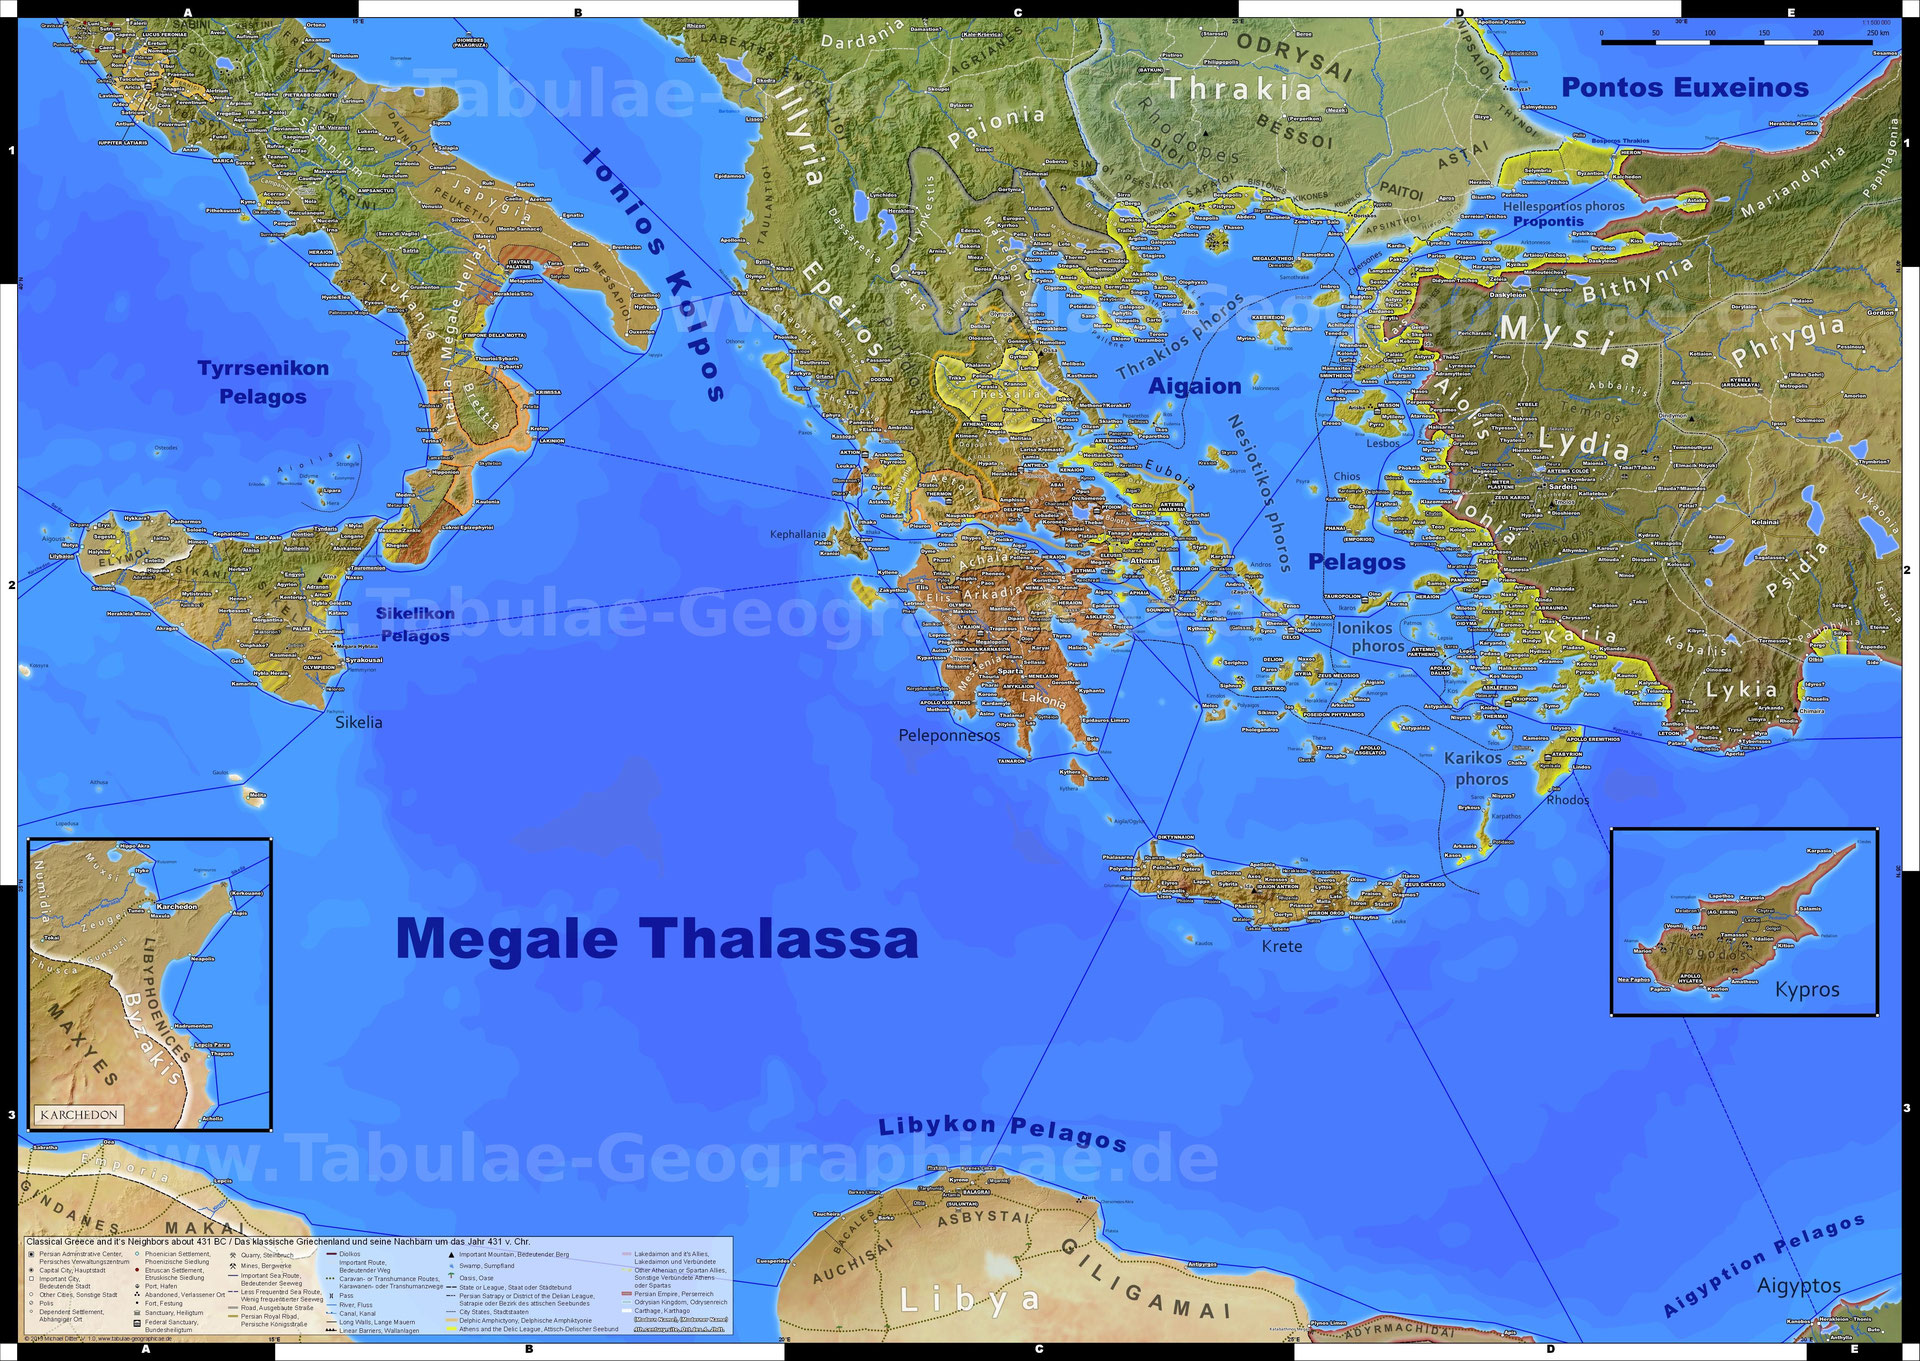 Preview Dawn of the Classical World - Tabulae Geographicae